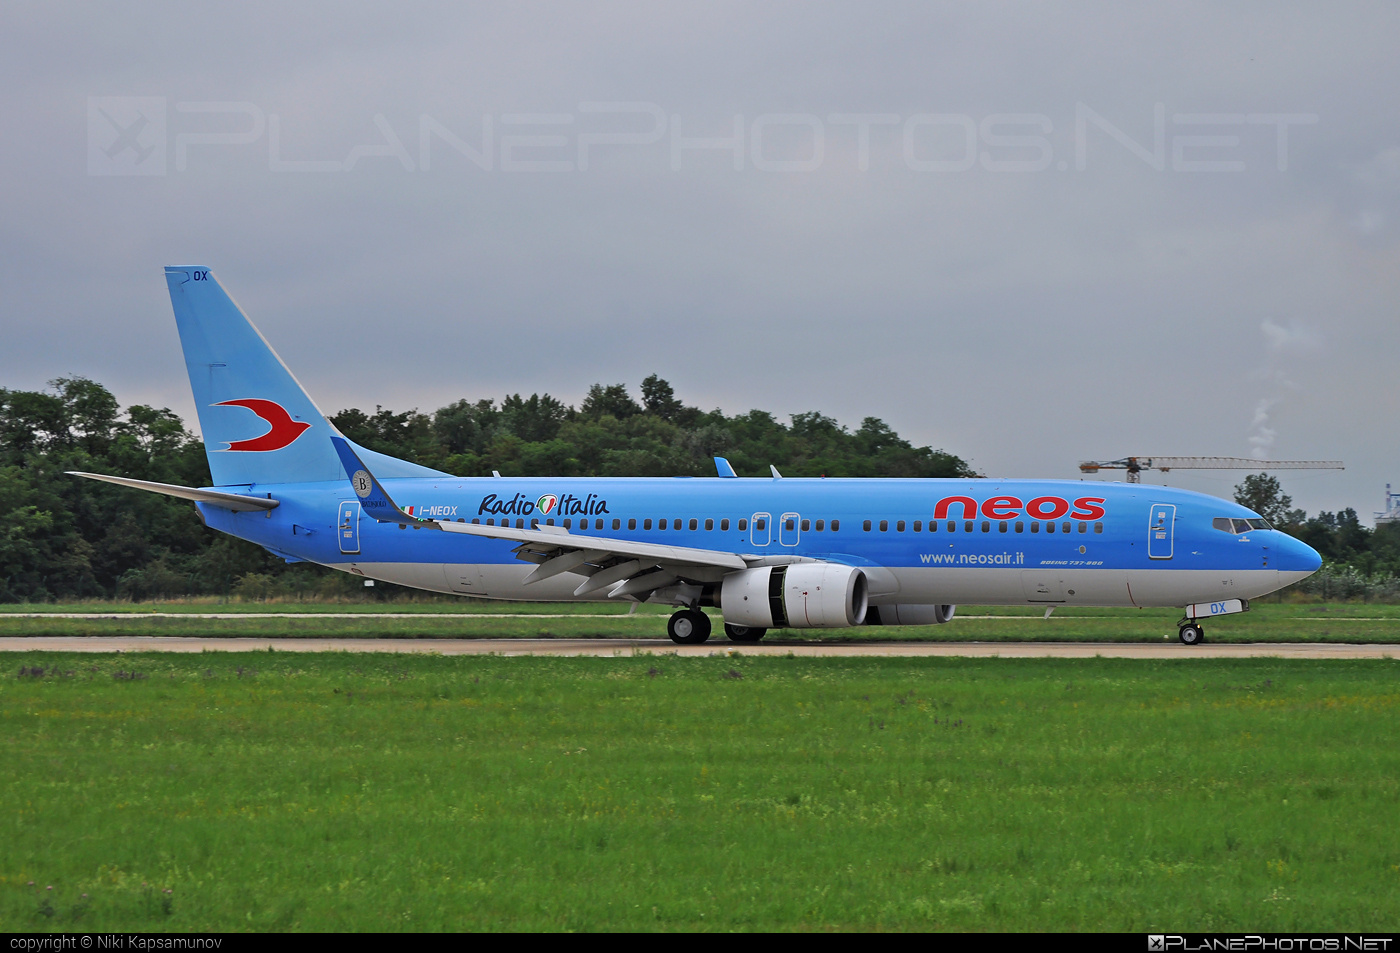 Boeing 737-800 - I-NEOX operated by Neos #b737 #b737nextgen #b737ng #boeing #boeing737